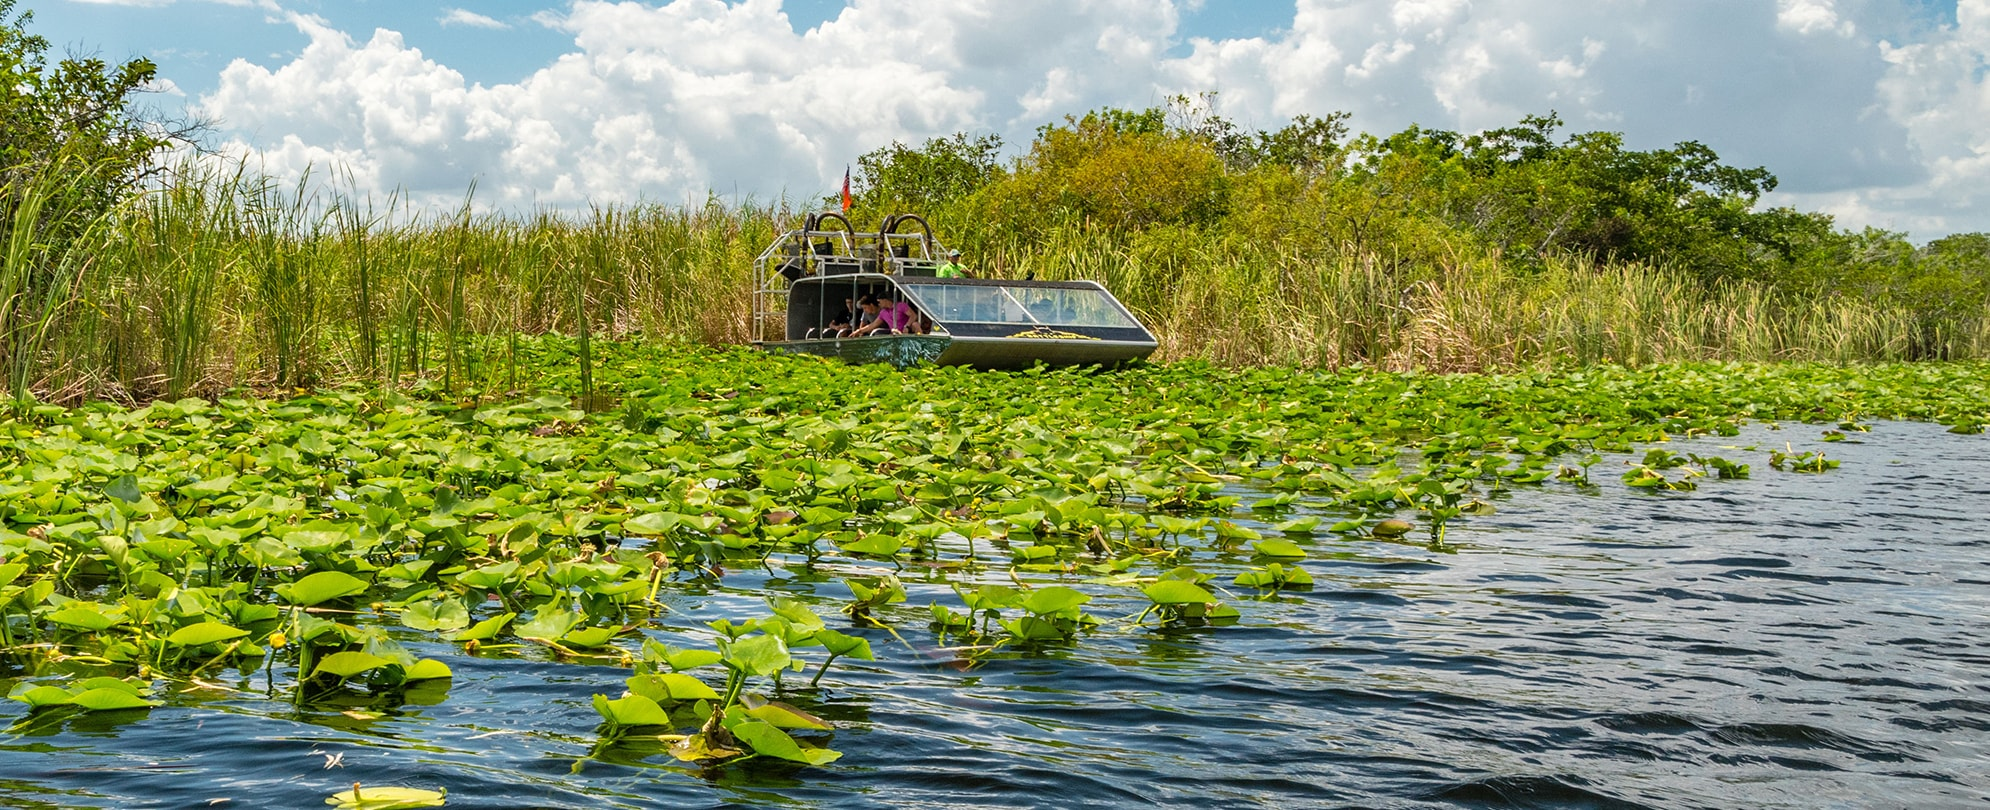 Airboat tour in Eveglades national park, Florida, USA